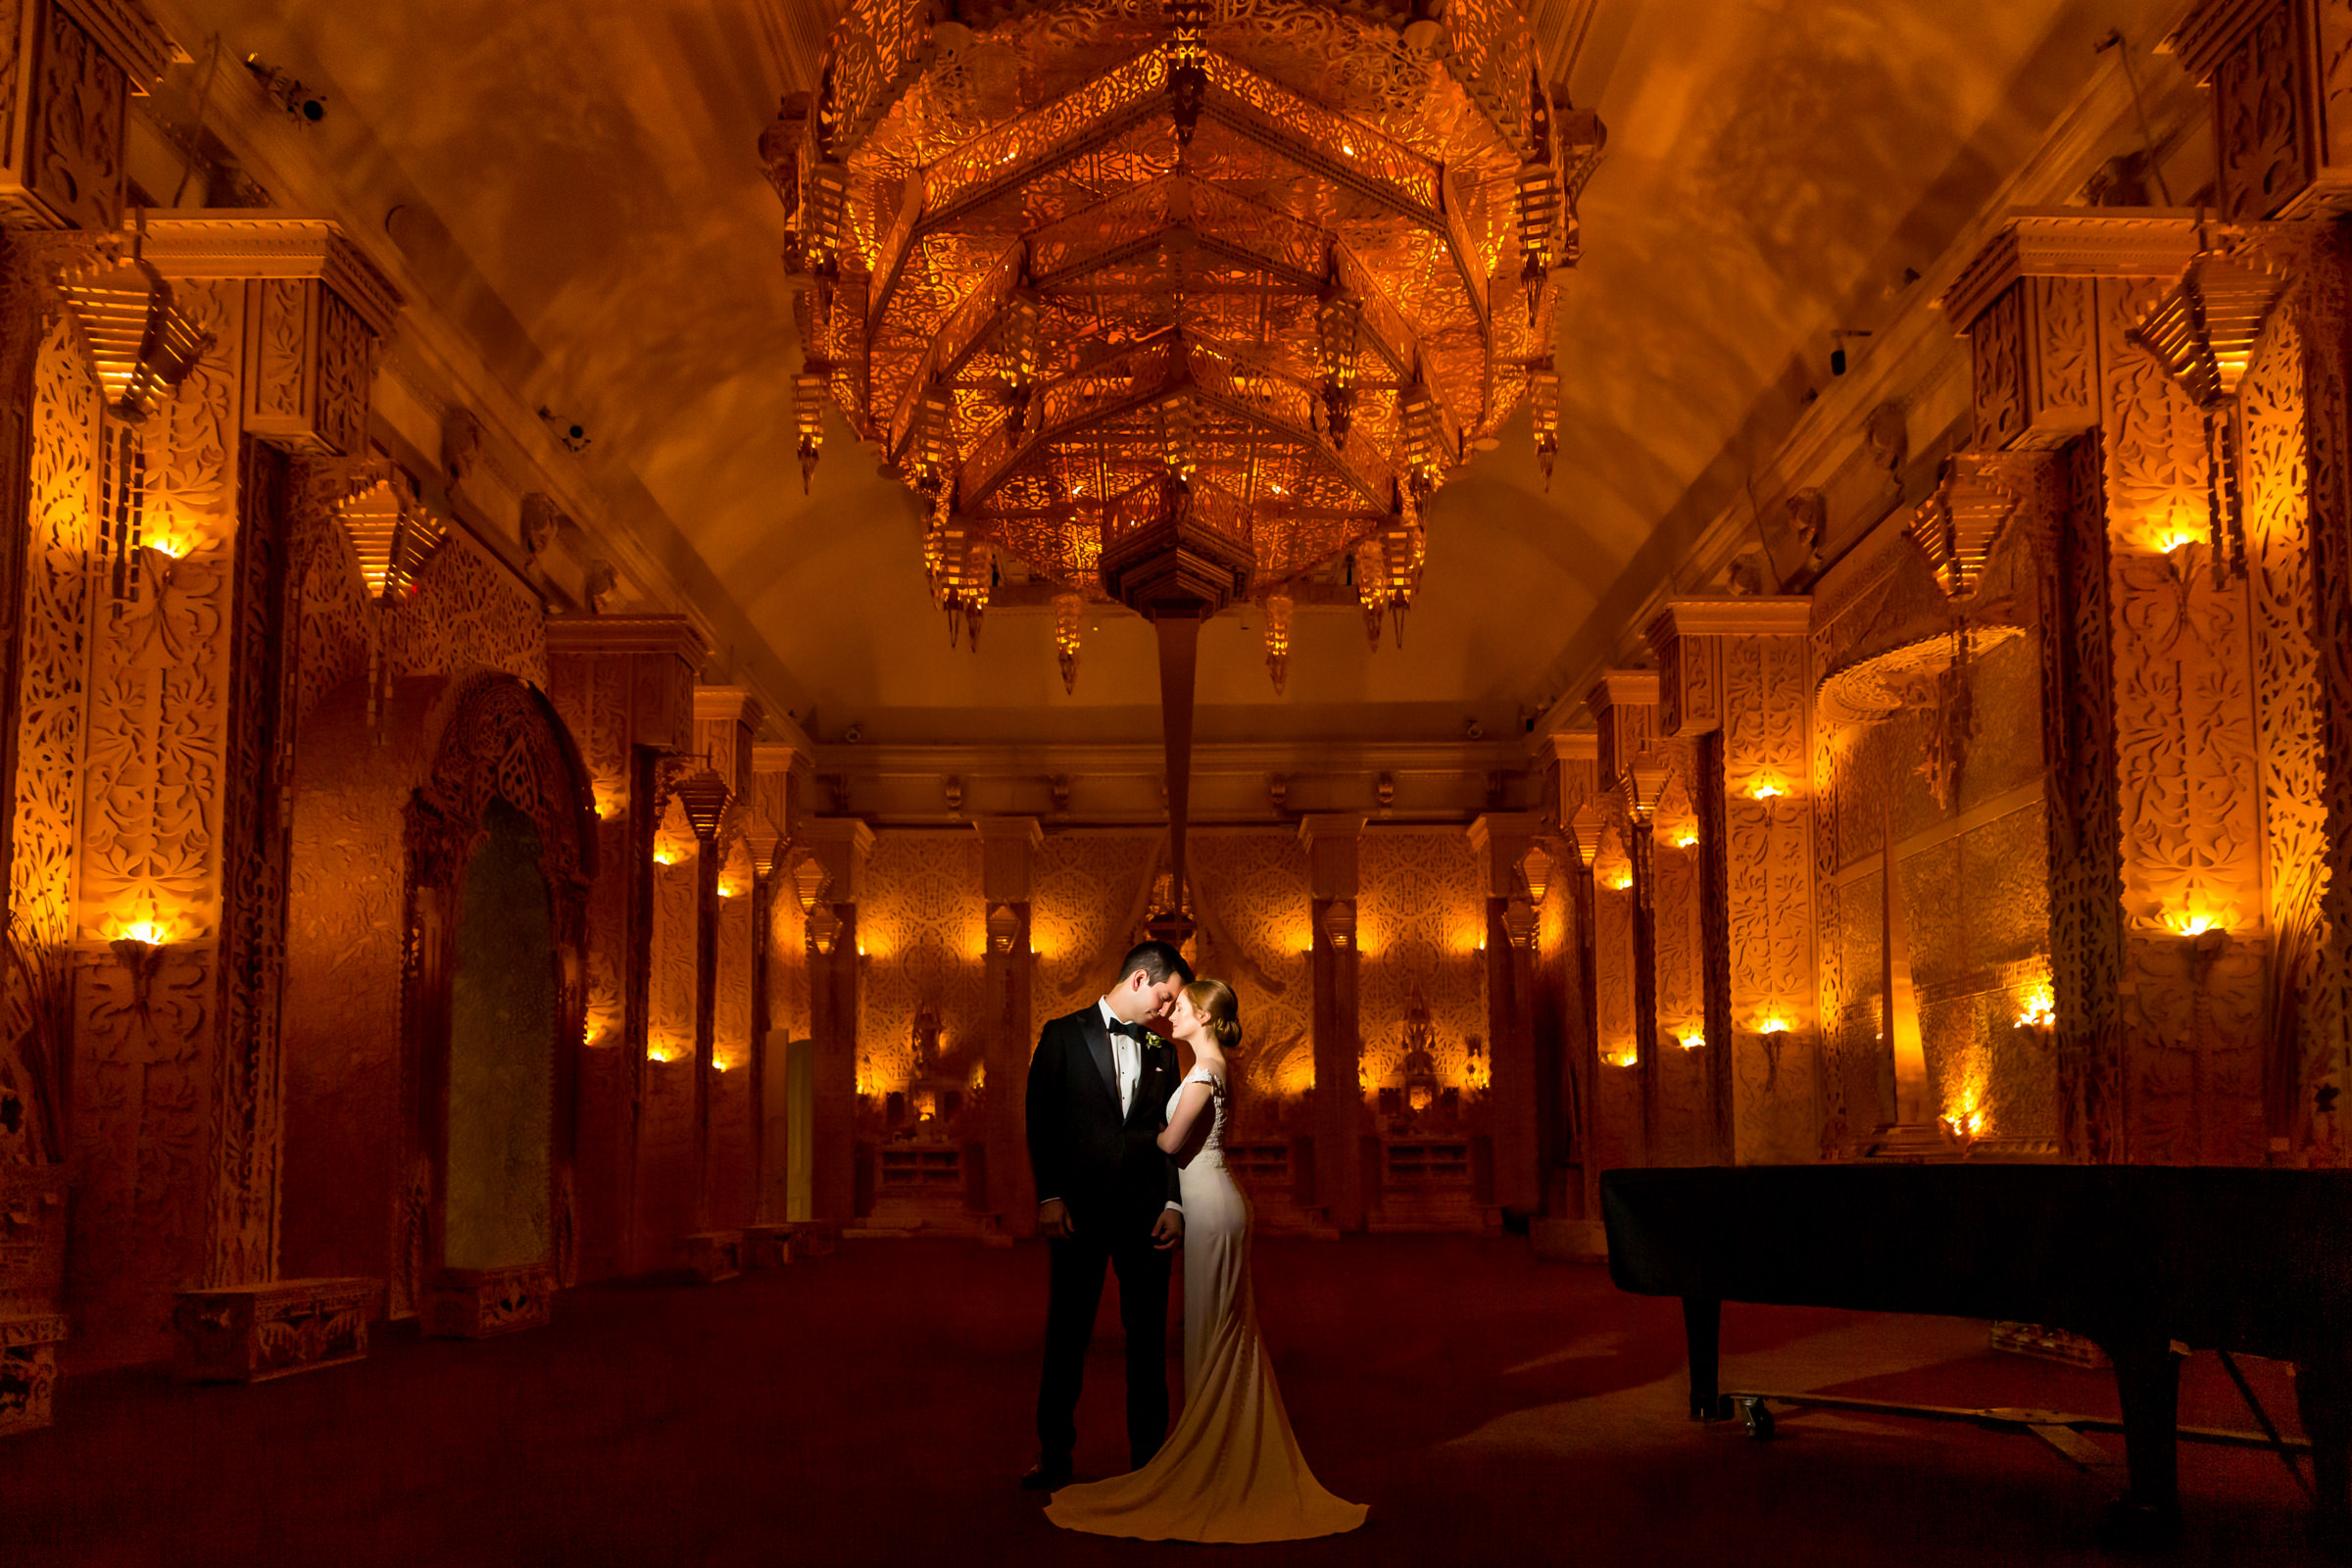 Couple in ornate lobby with chandeliers and sconces Hotel Renwick art gallery meridian house- photo by Procopio Photography